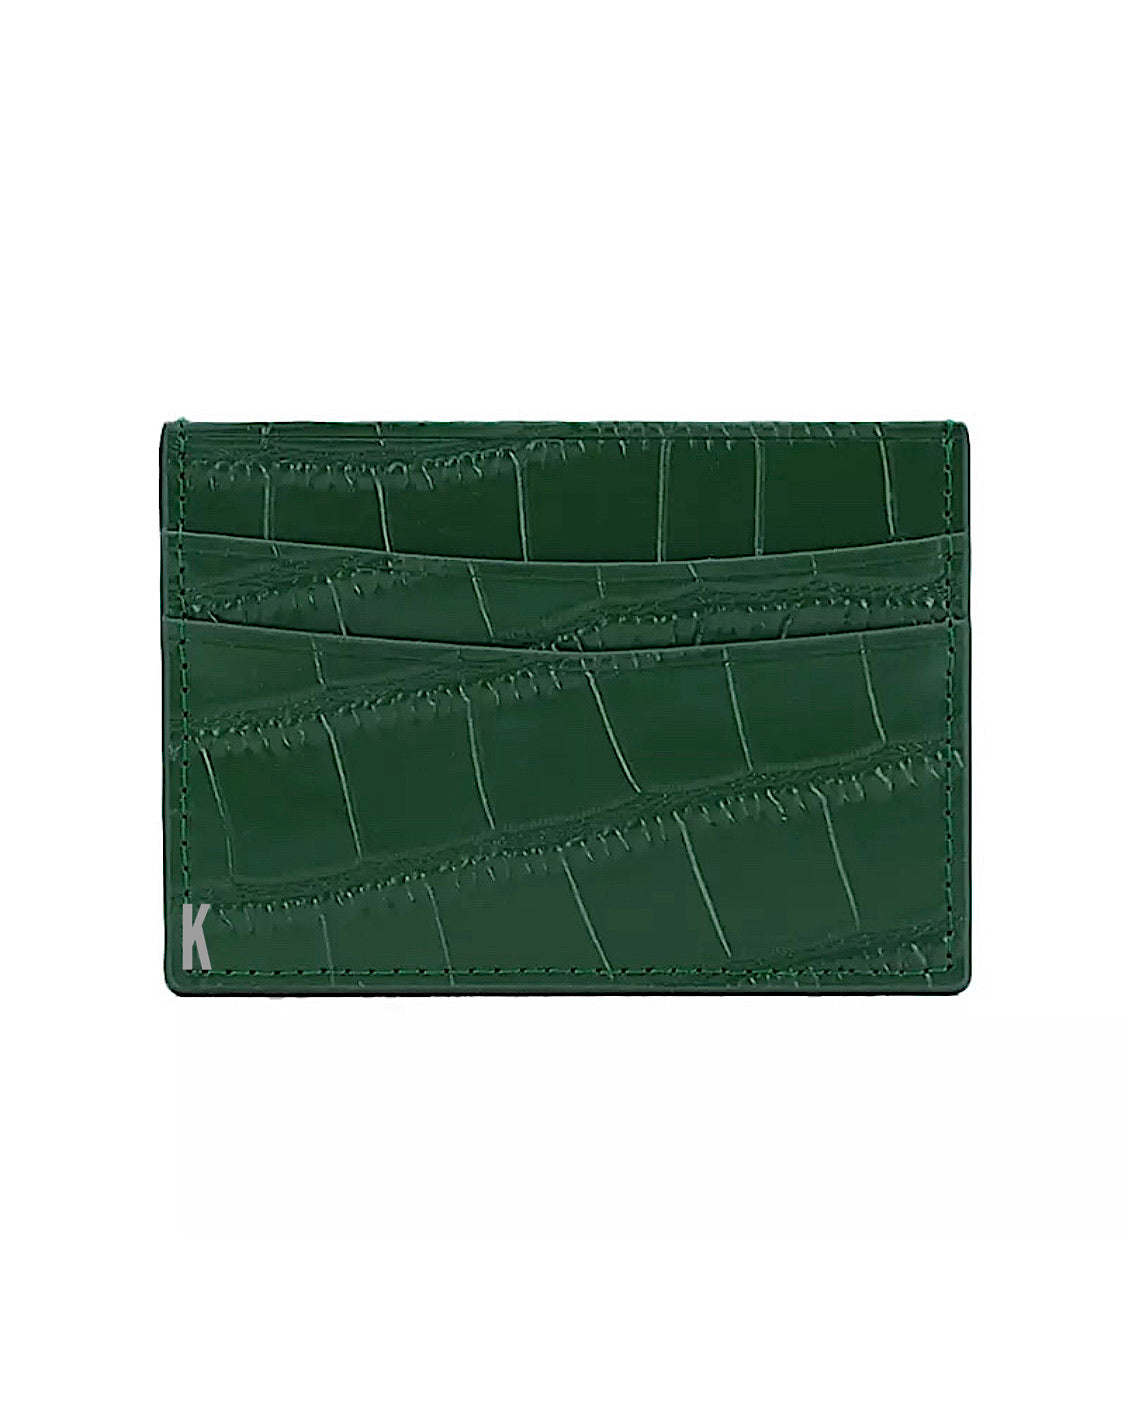 (Made-to-order) Deep Forrest Green Croc Embossed Vegan Leather Card Case